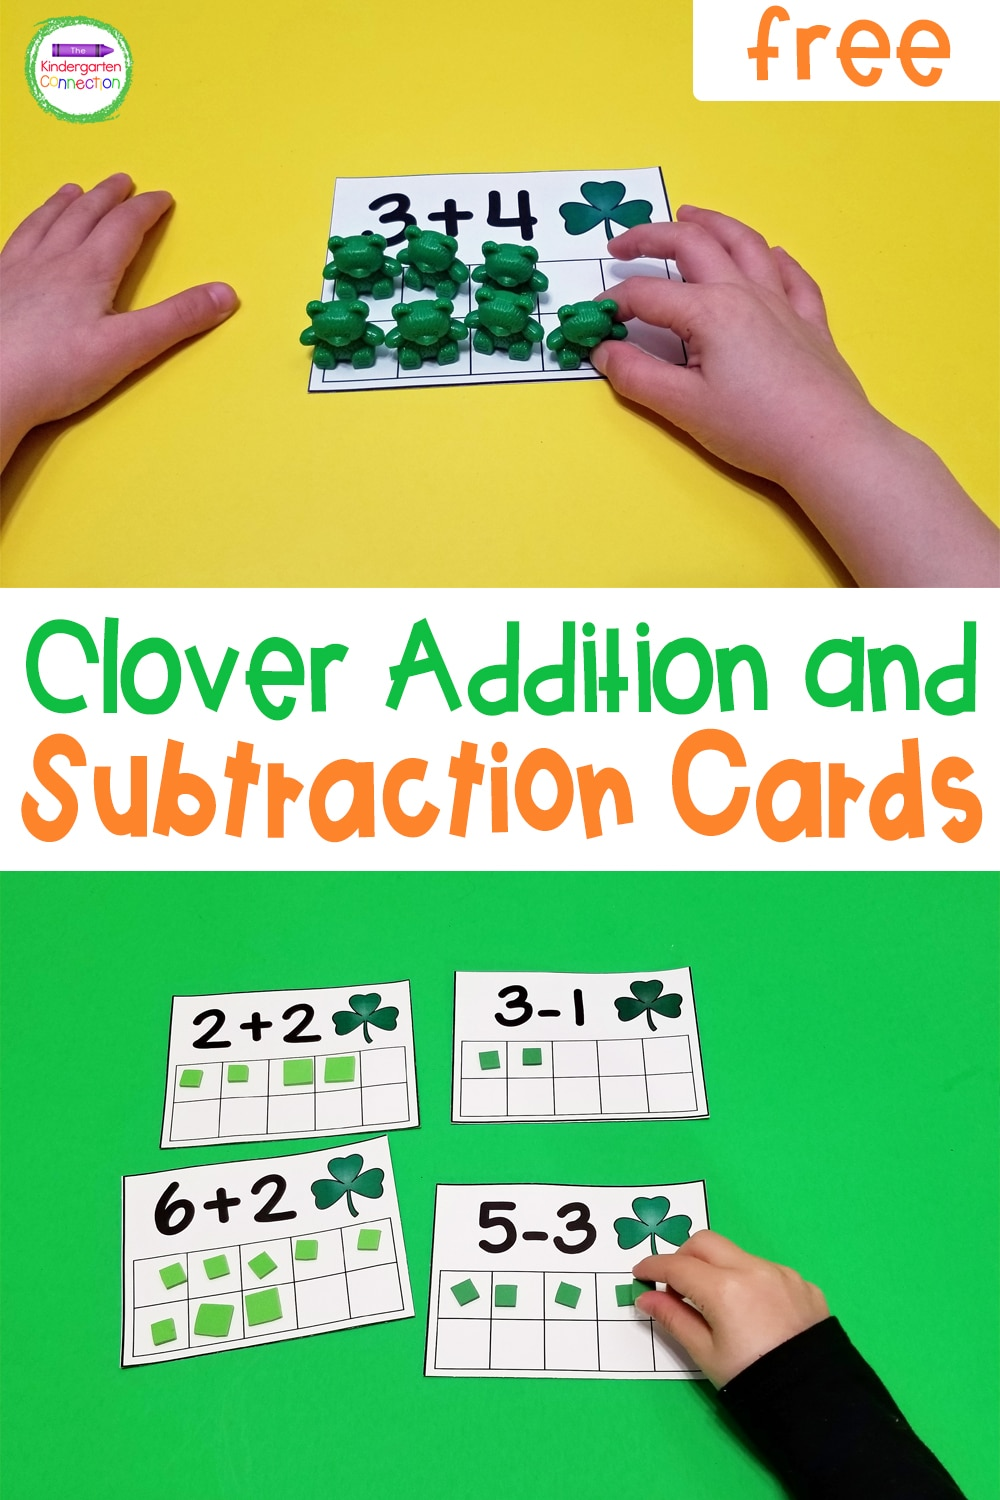 Great for small groups, centers, or independent work, these free printable Clover Addition and Subtraction Cards are super versatile!